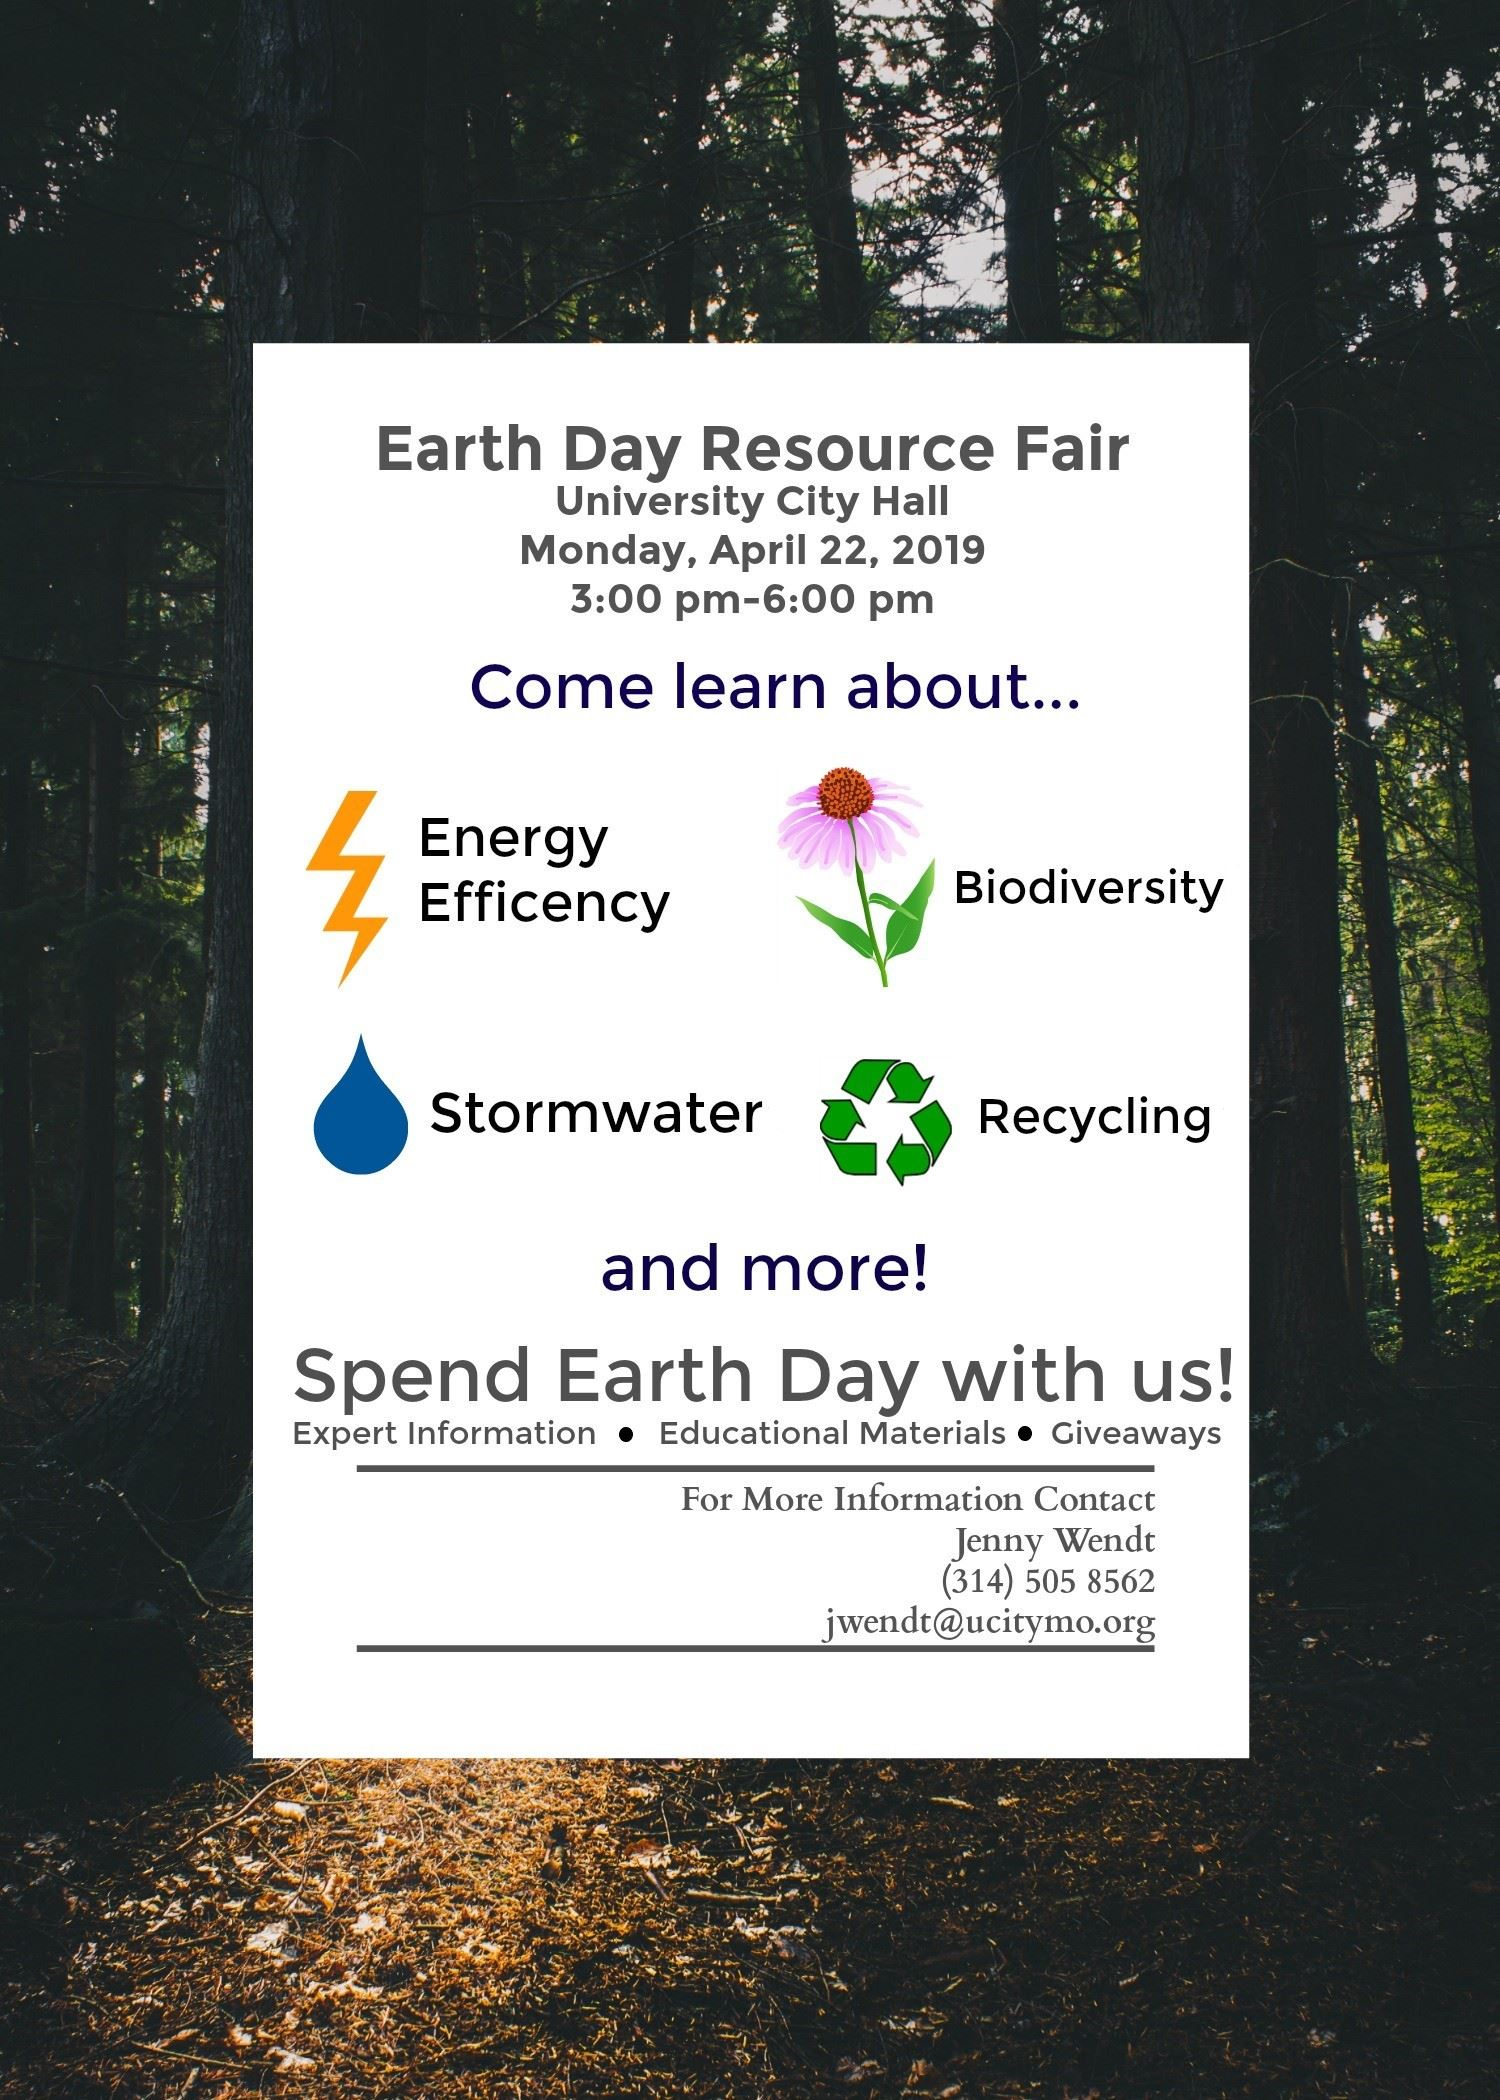 Earth Day Resource Fair flyer